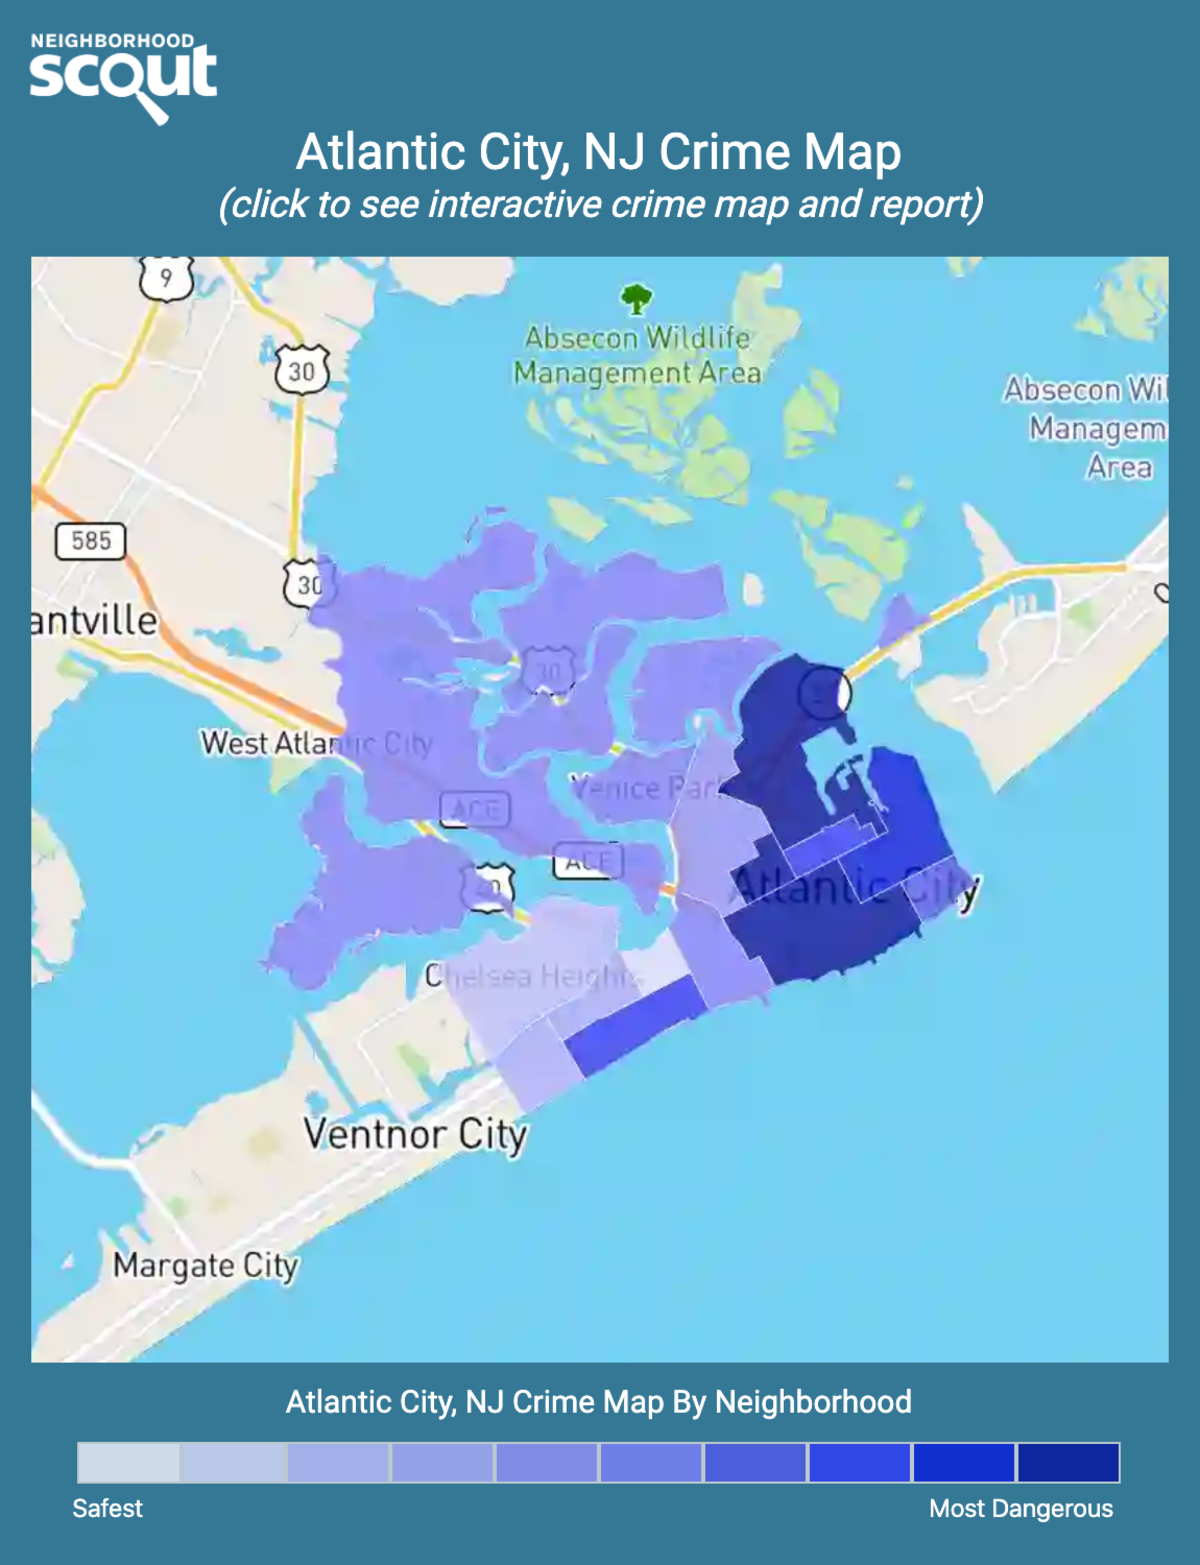 Atlantic City, New Jersey crime map